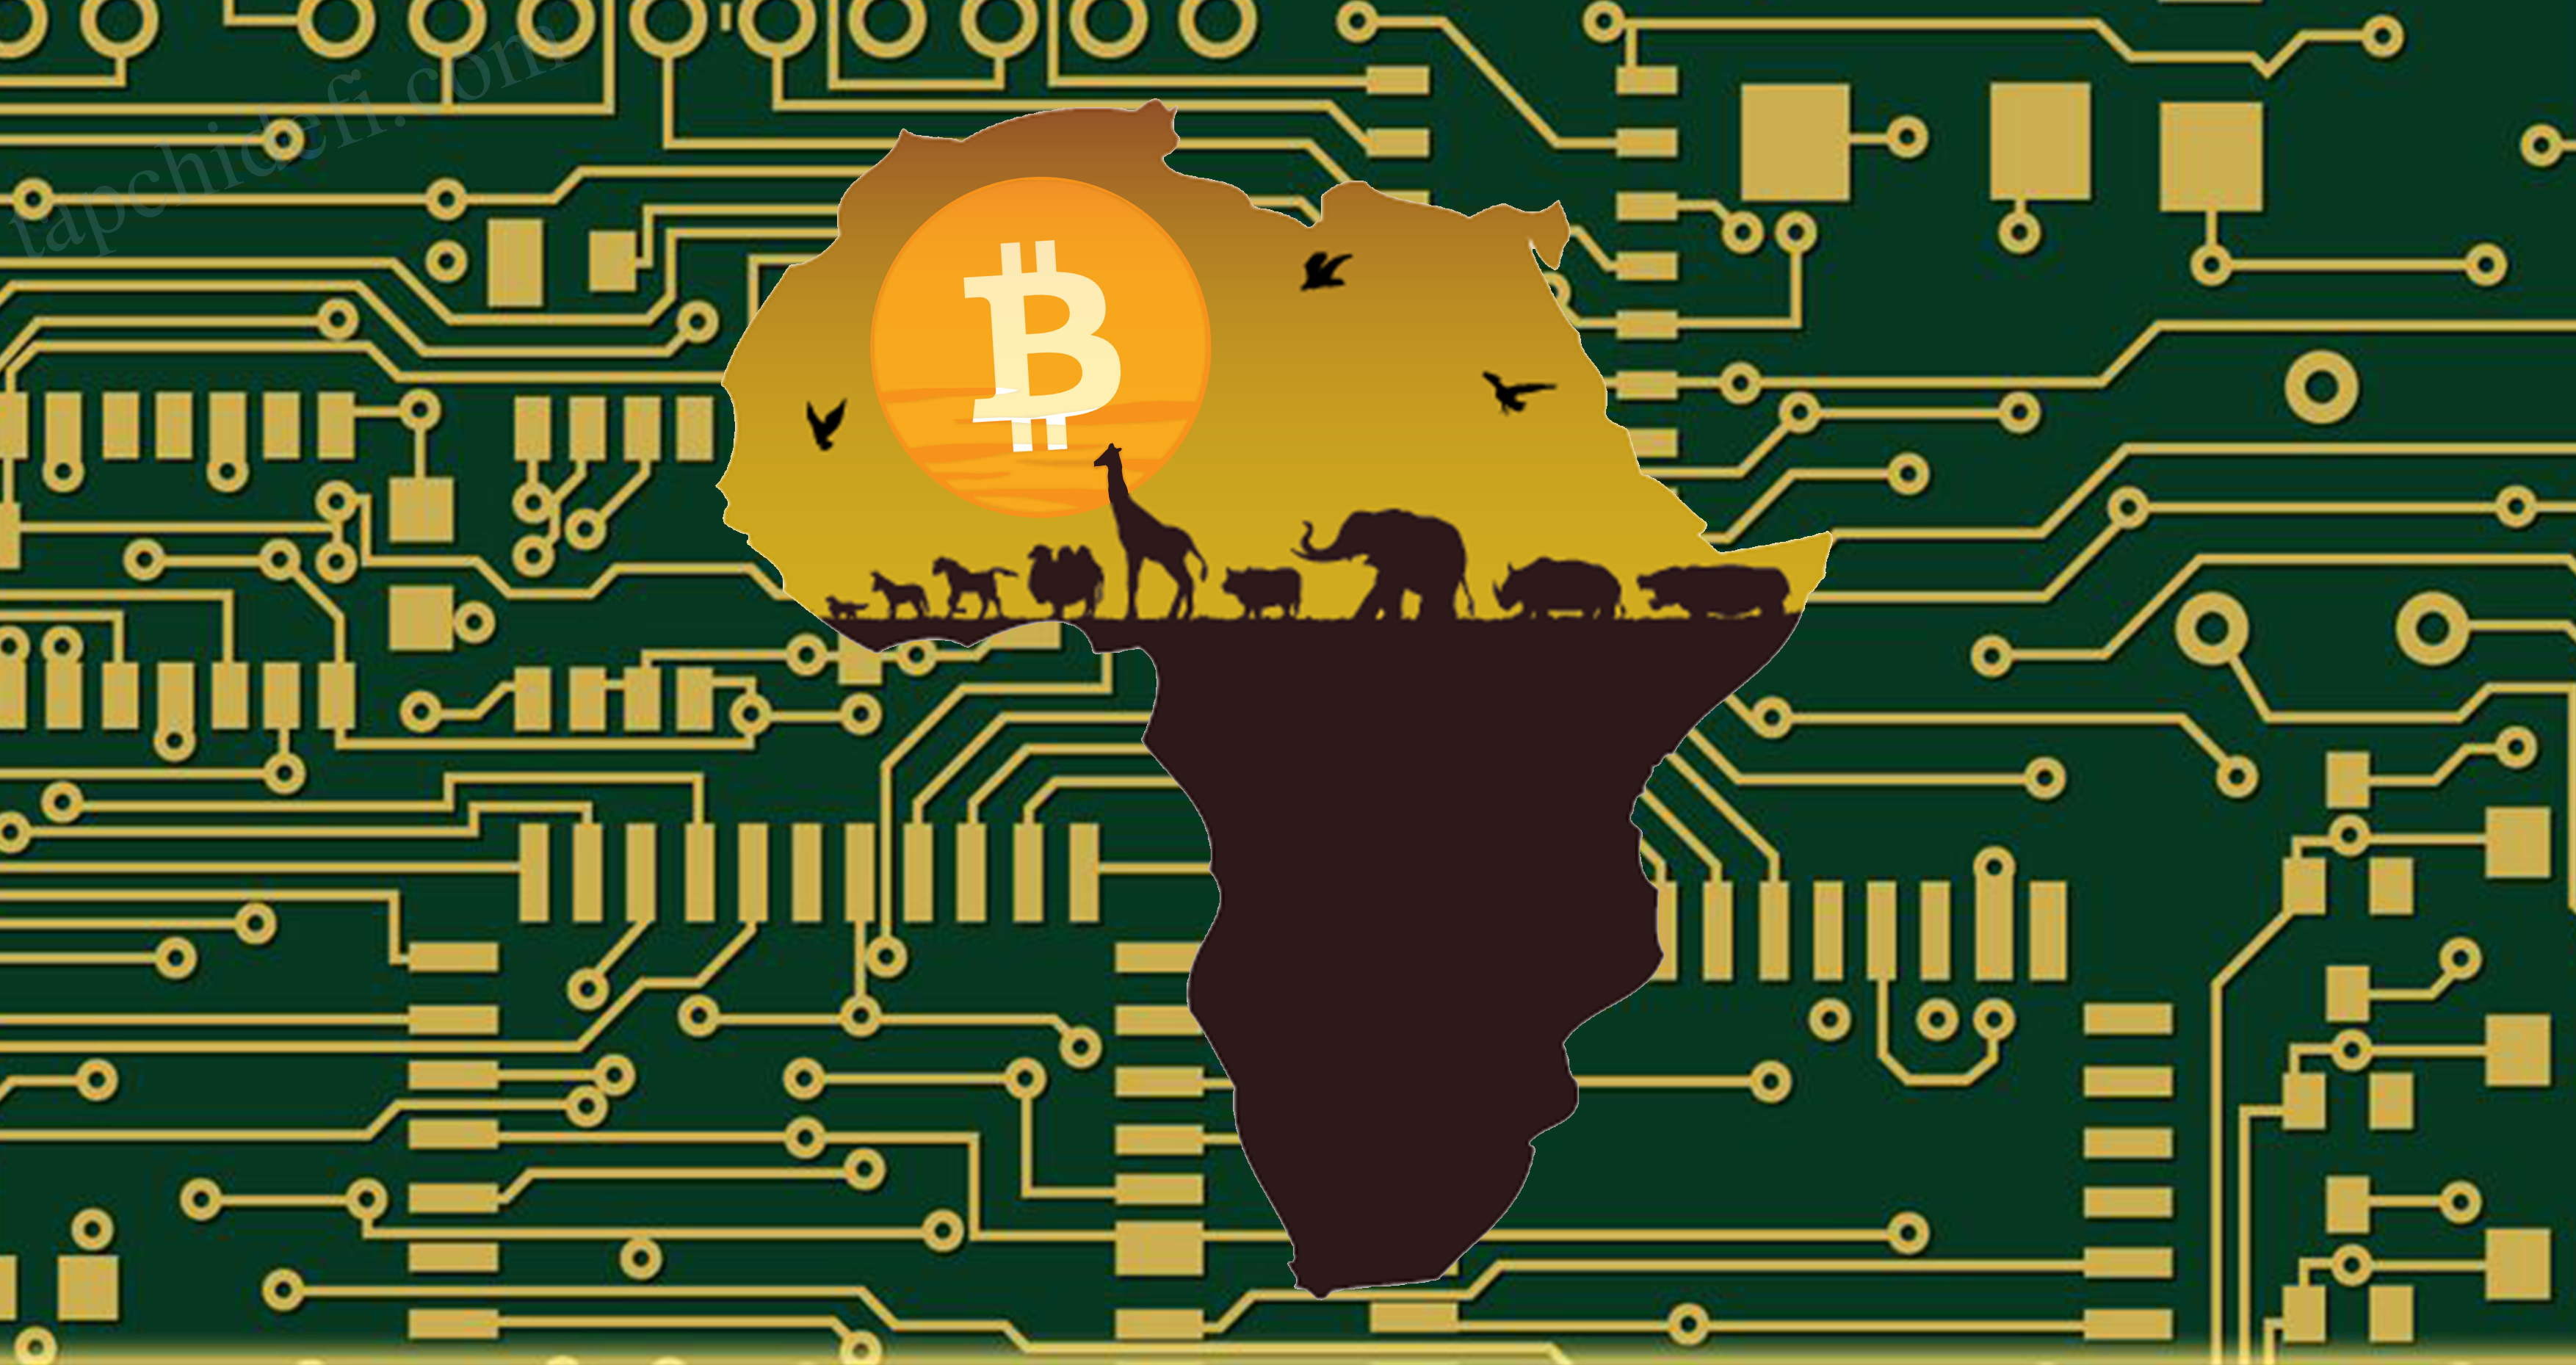 Africa has a chance to join Bitcoin